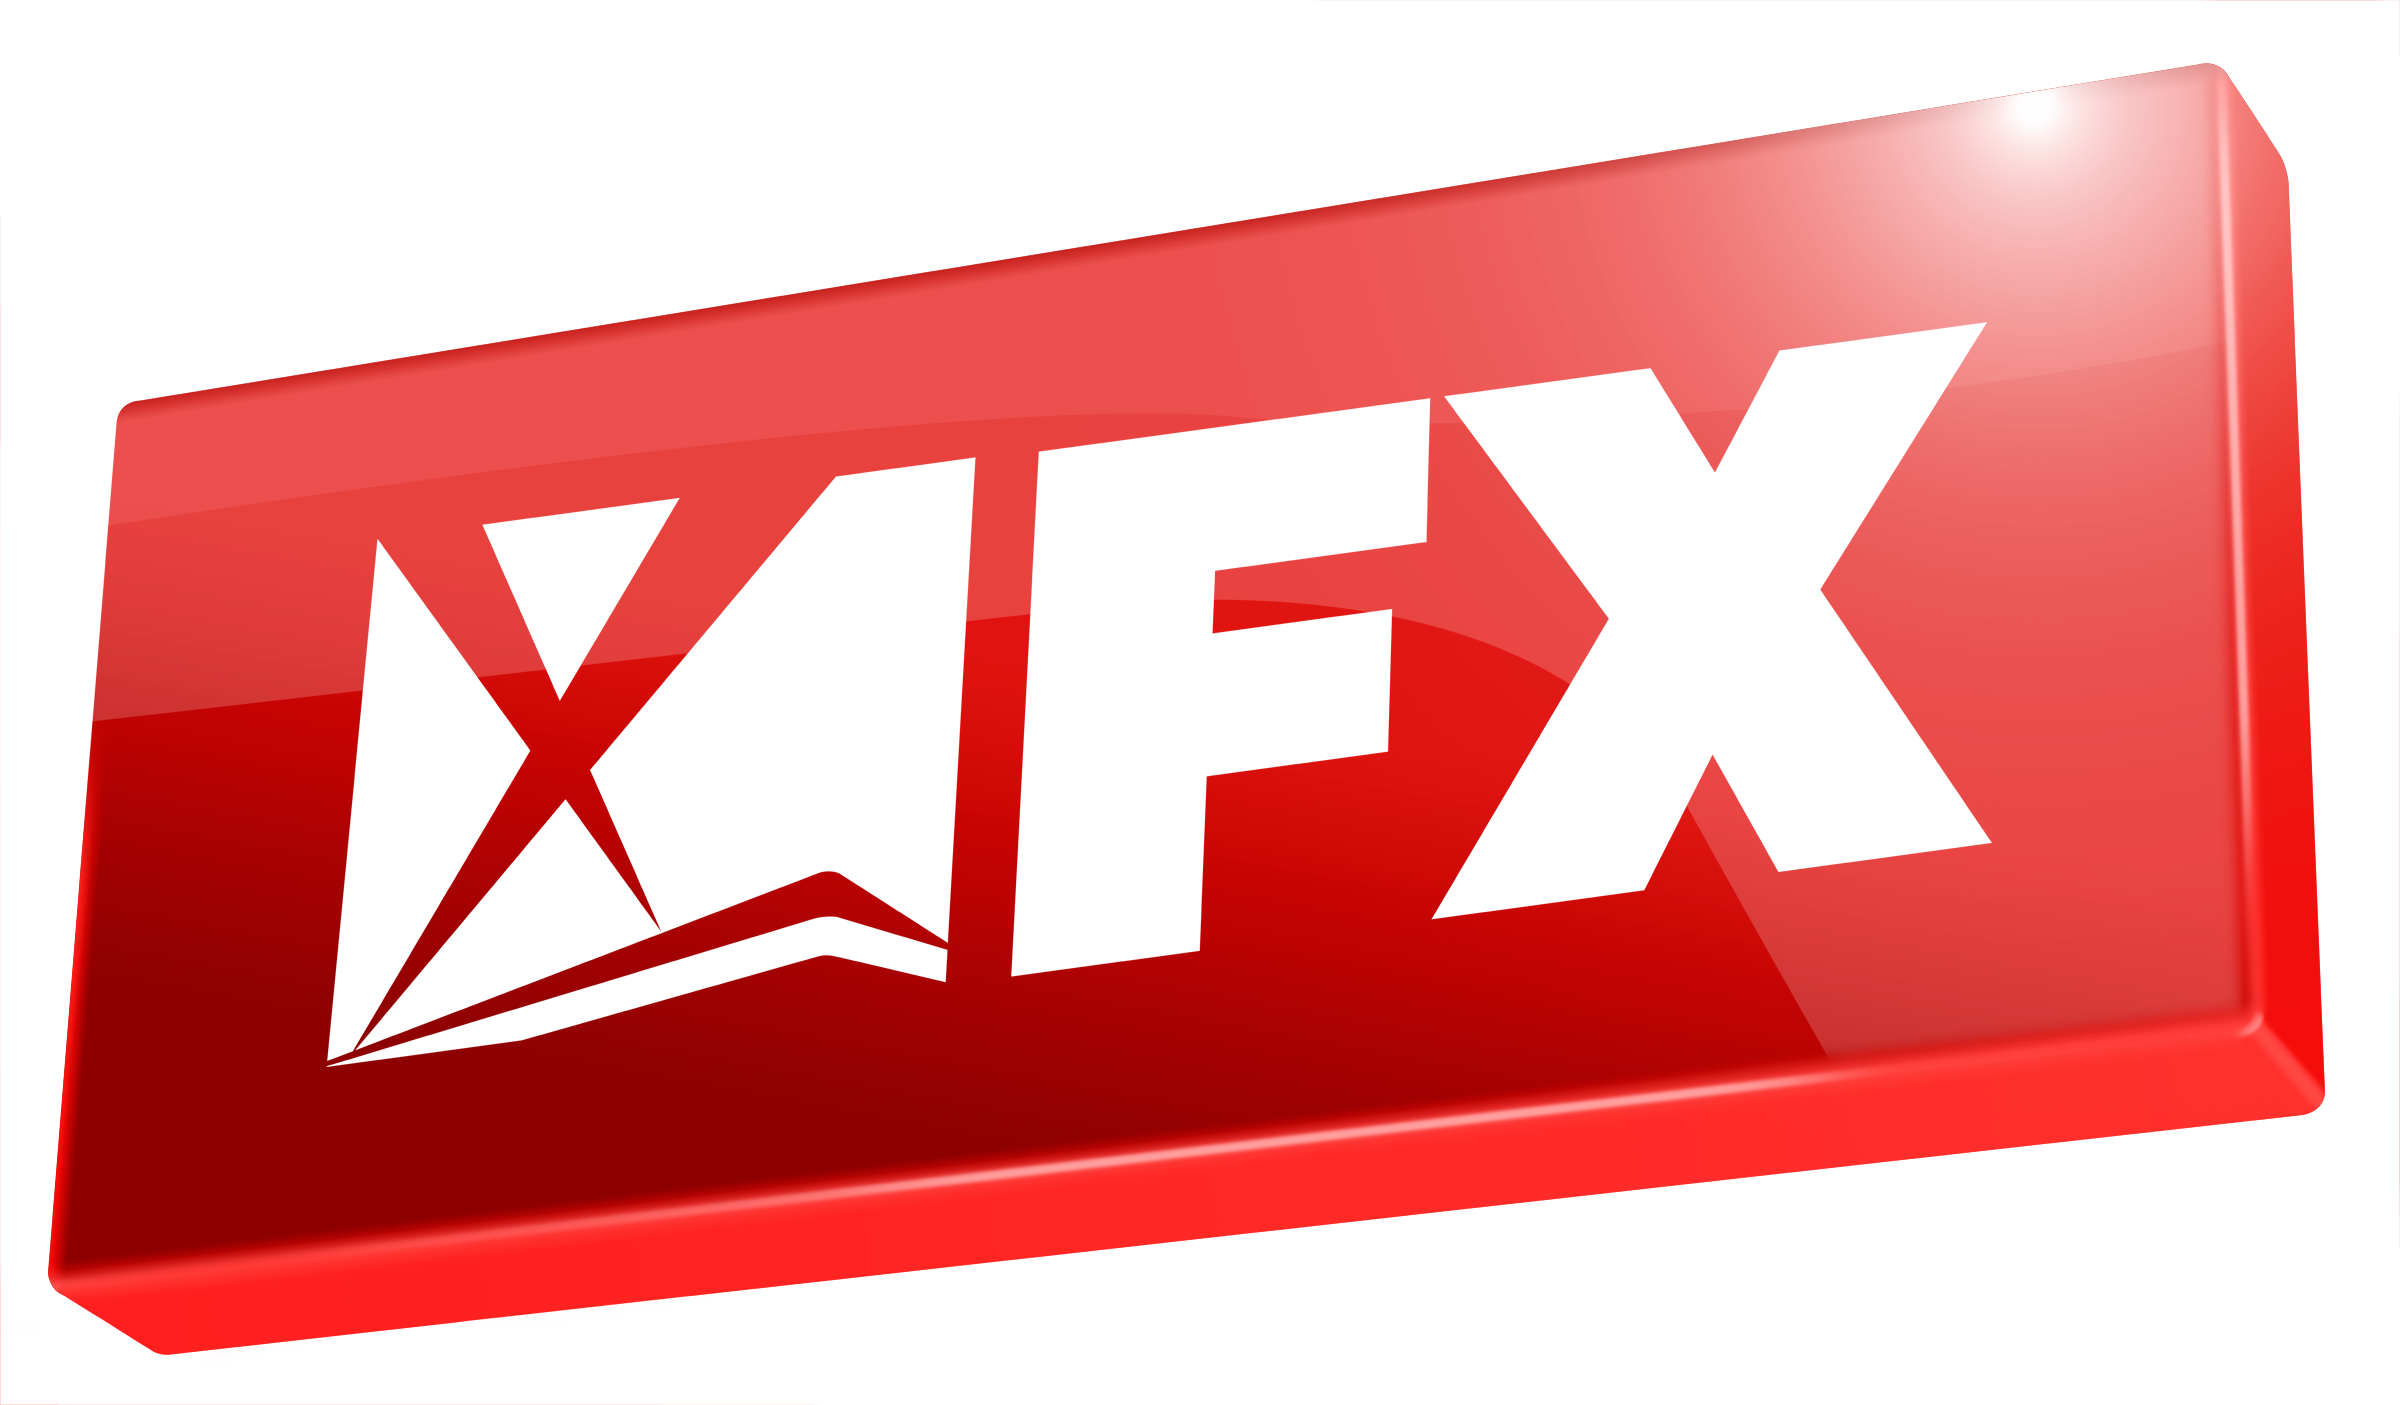 What is a fx